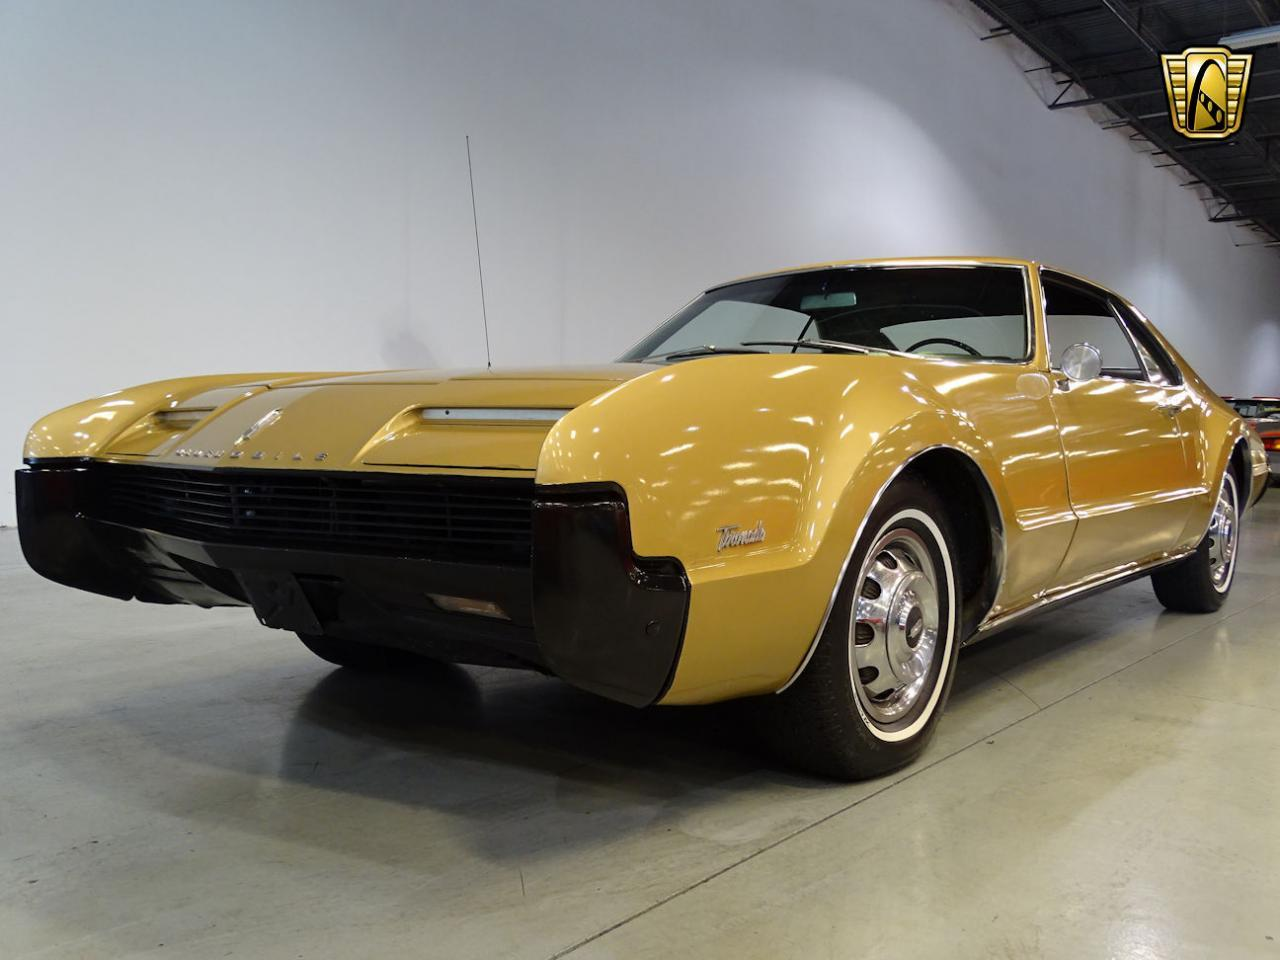 Large Picture of Classic '66 Toronado located in Lake Mary Florida - $9,995.00 Offered by Gateway Classic Cars - Orlando - L87I